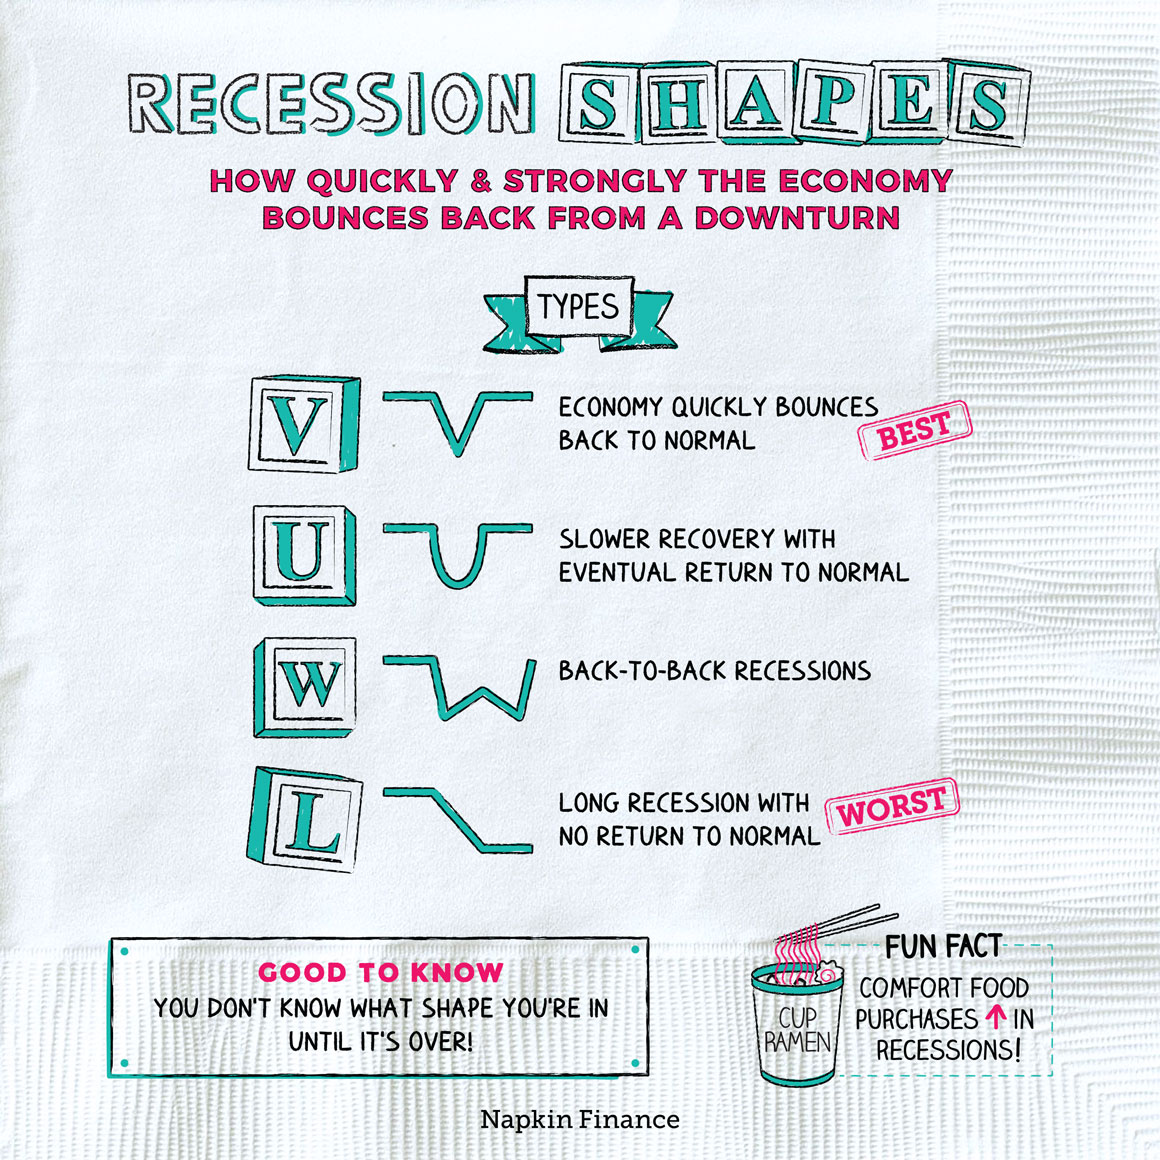 Recession Shapes